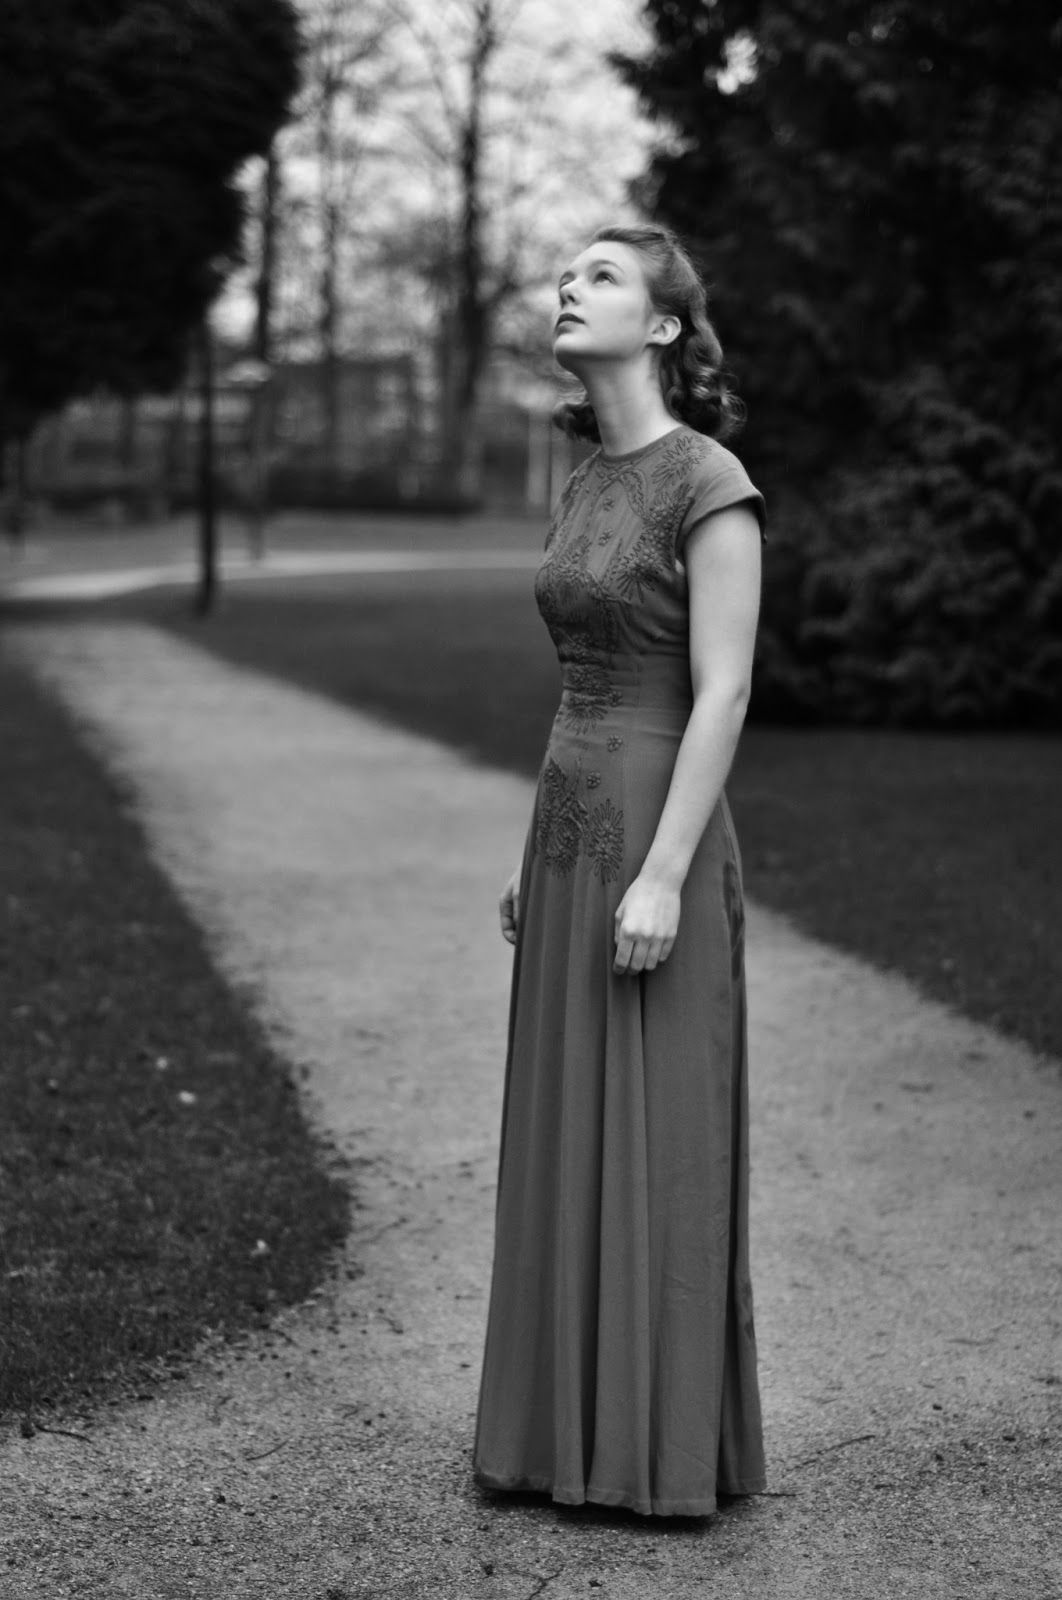 Old-fashioned at heart: Photoshoot with Yesim Yilanci